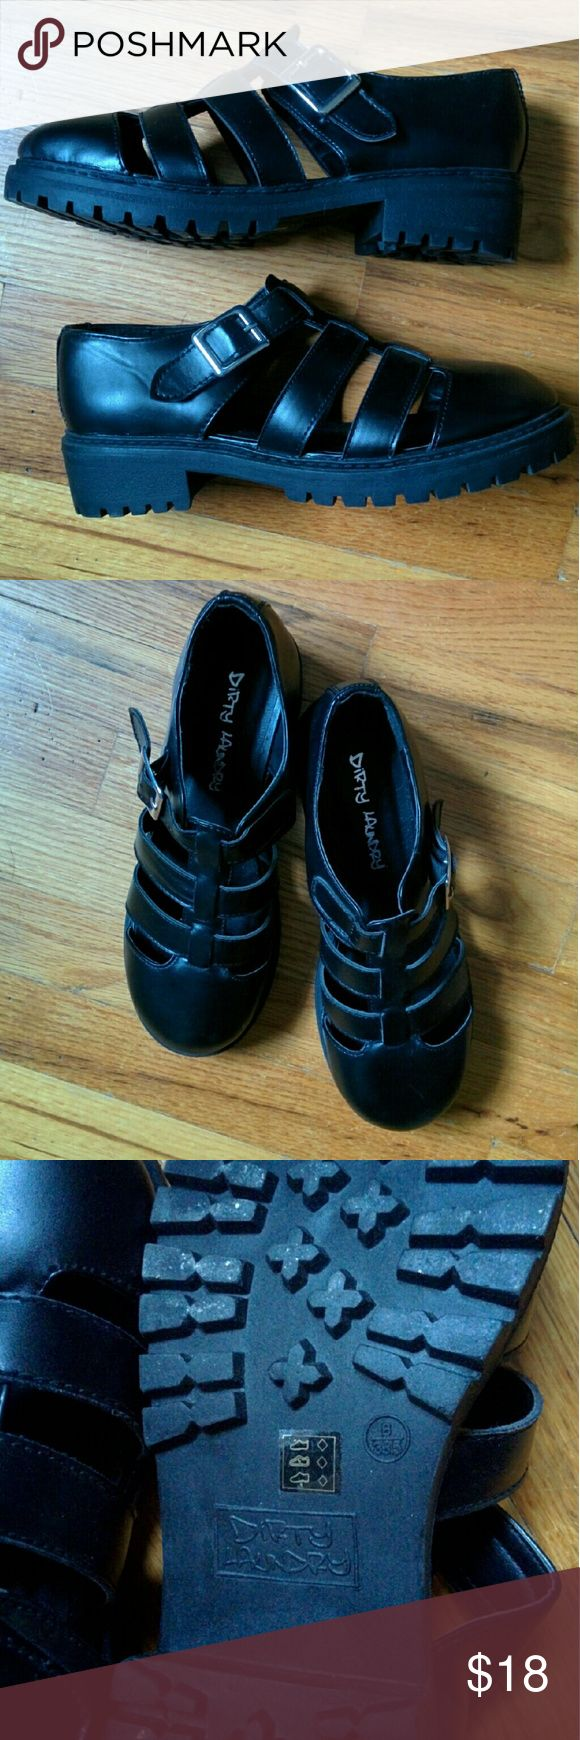 Dirty laundry fisherman shoes Black faux leather chunky shoes from Tilly's. They are marked as an 8 but a bit too big for me unless wearing thick socks. I'd say they fit a borderline size 8.5 or a very wide size 8. Never worn! Tilly's Shoes Flats & Loafers